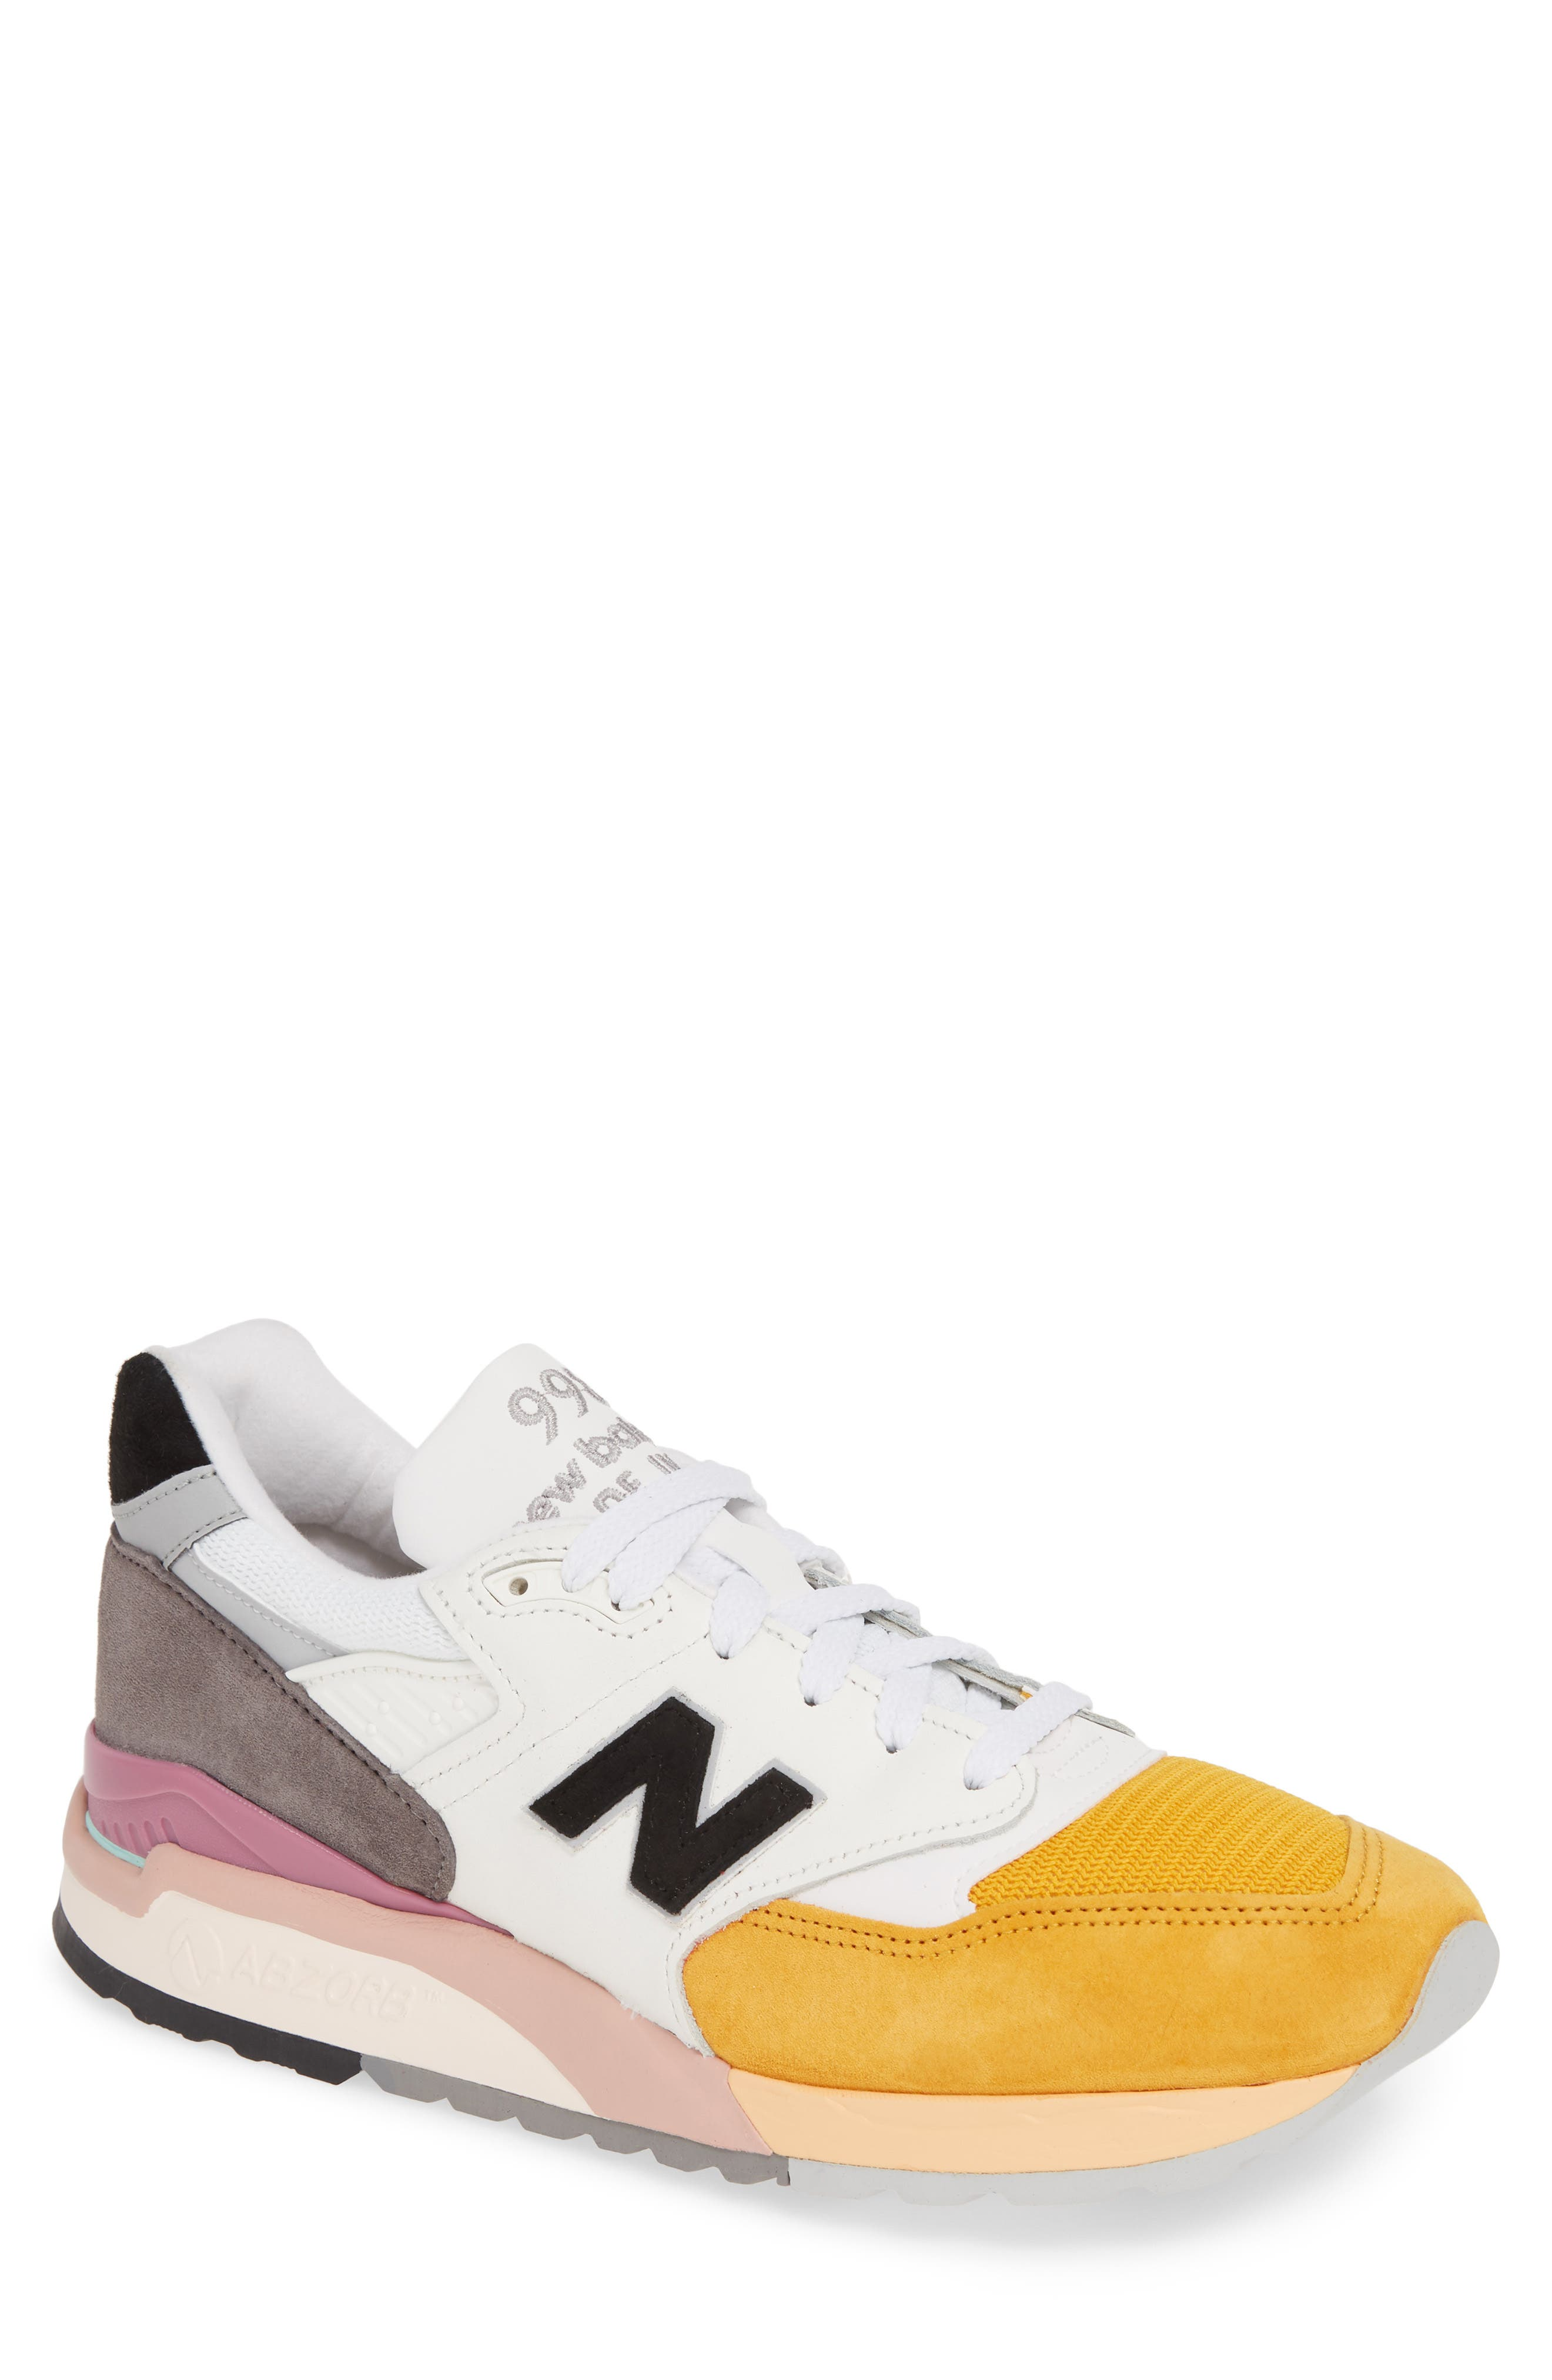 New Balance Topman & Trend Shoes for Men | Nordstrom